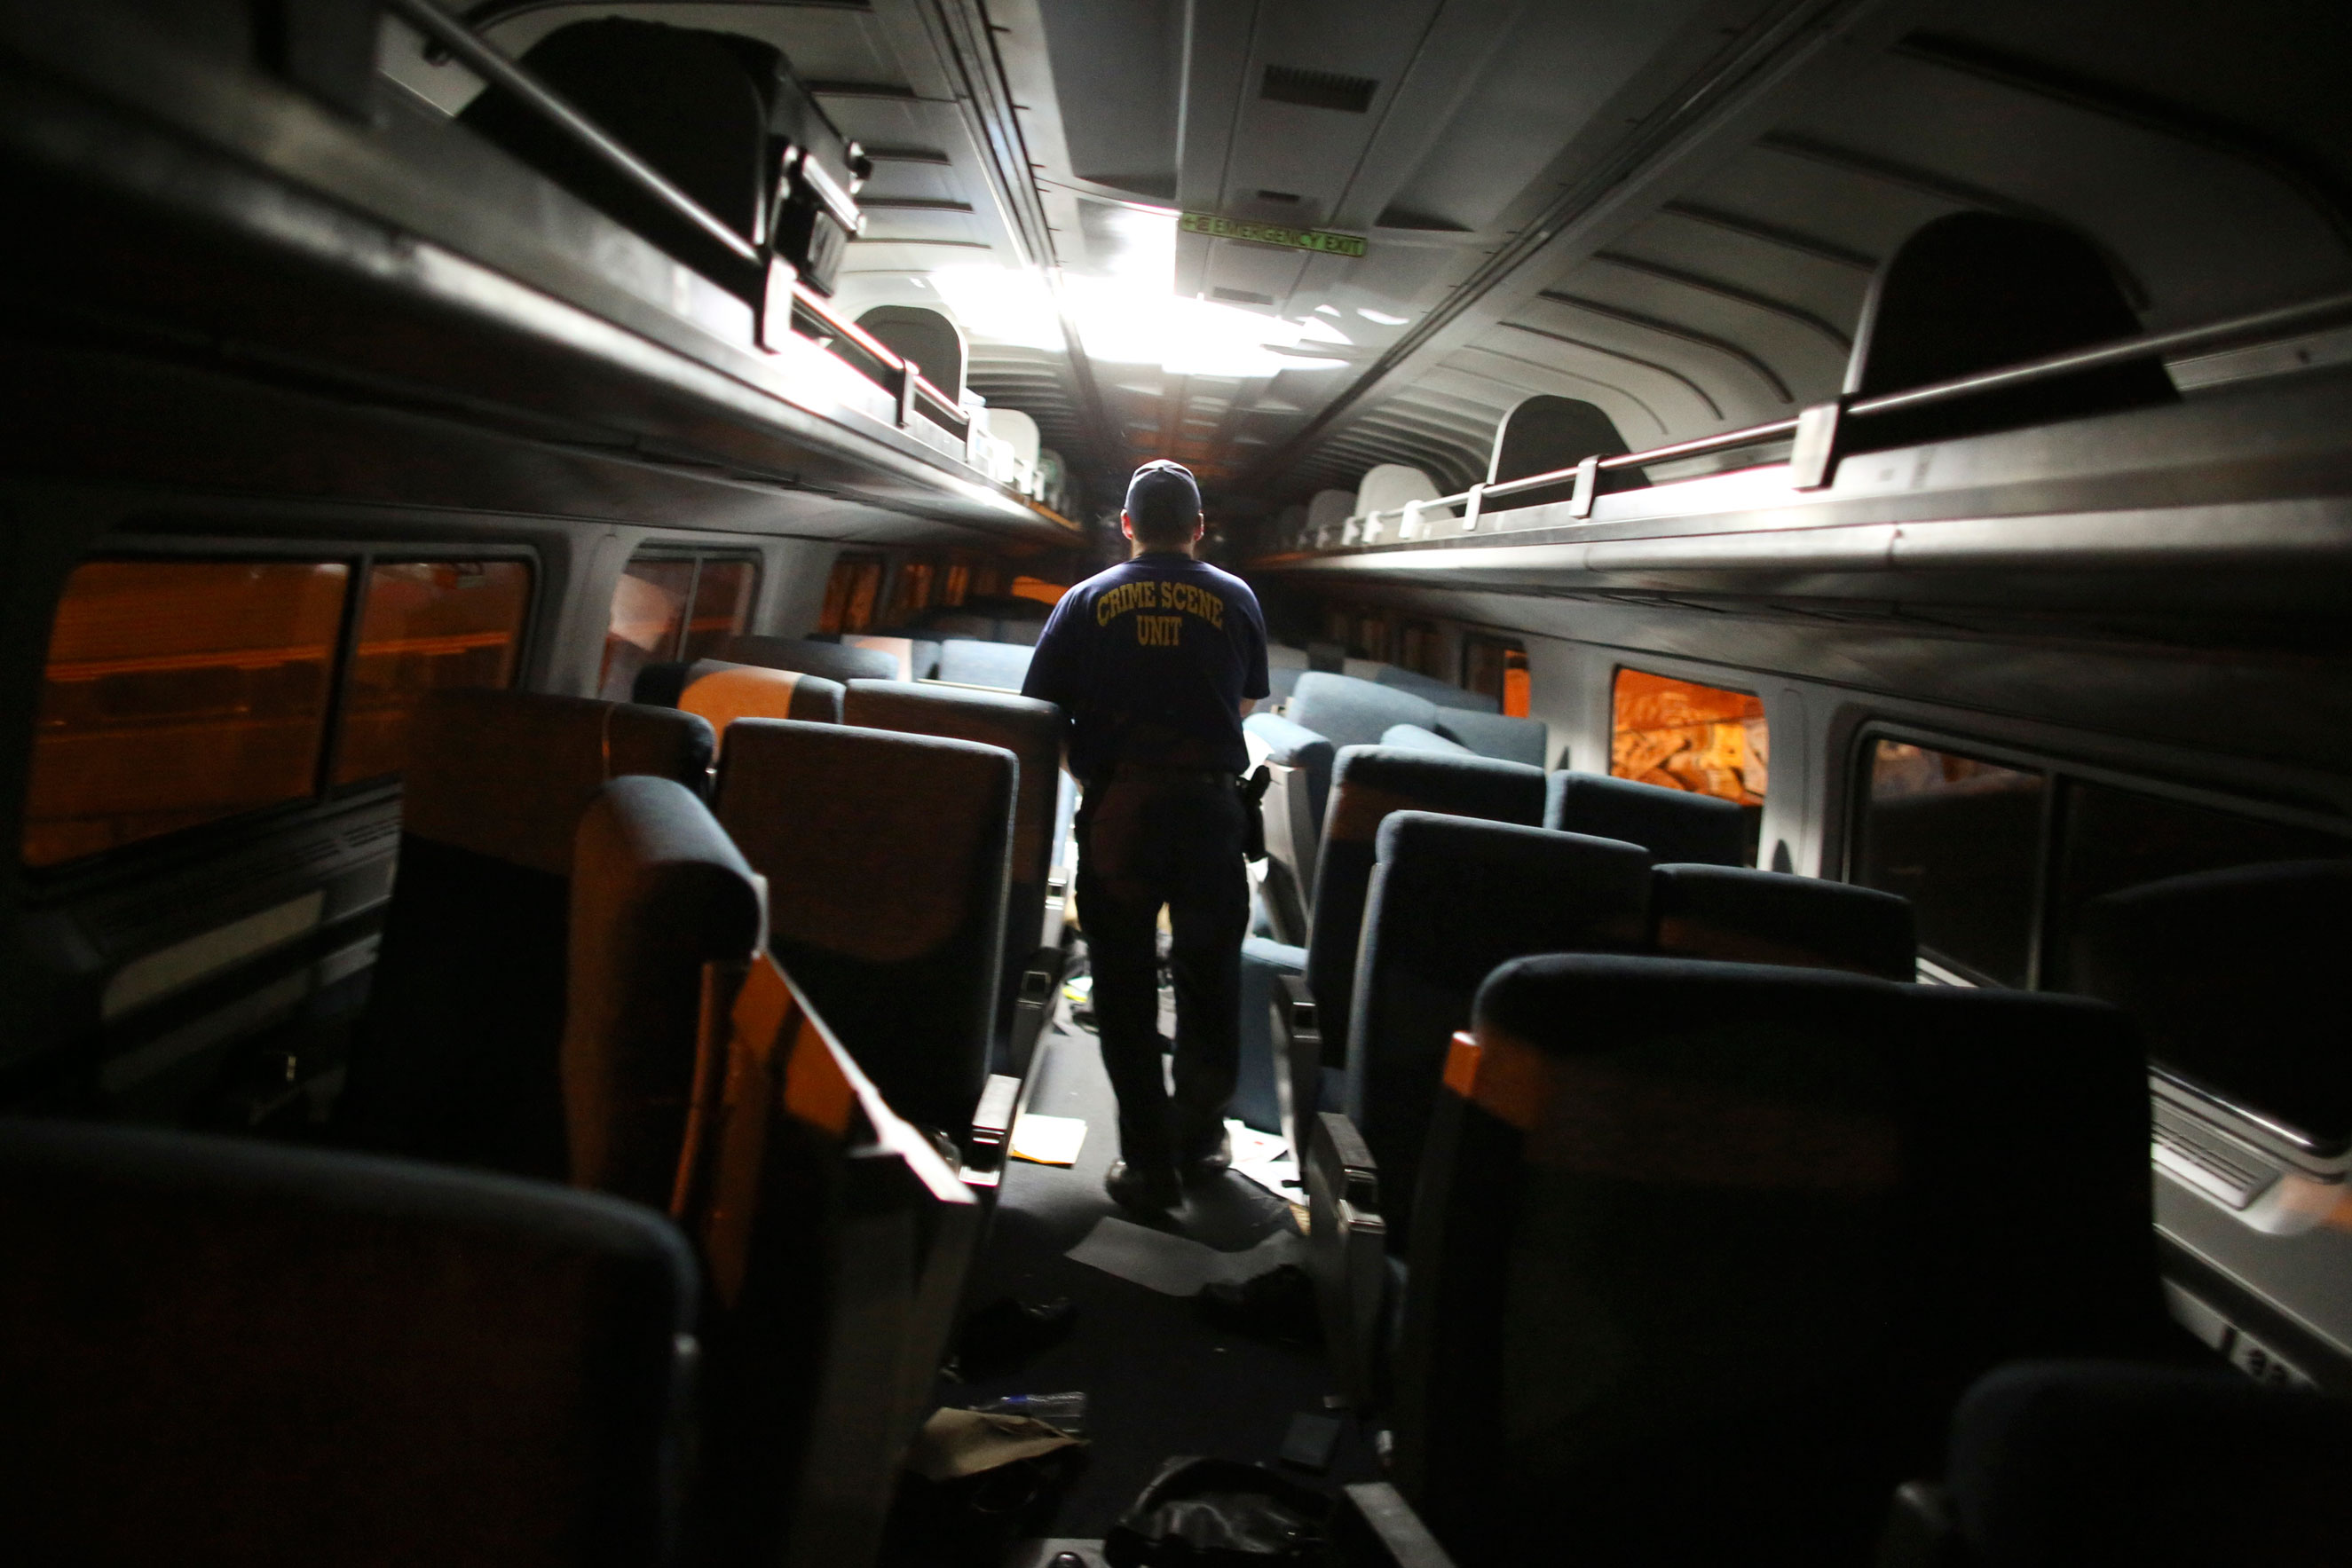 A crime scene investigator looks inside a train car after a train wreck on May 12, 2015, in Philadelphia.